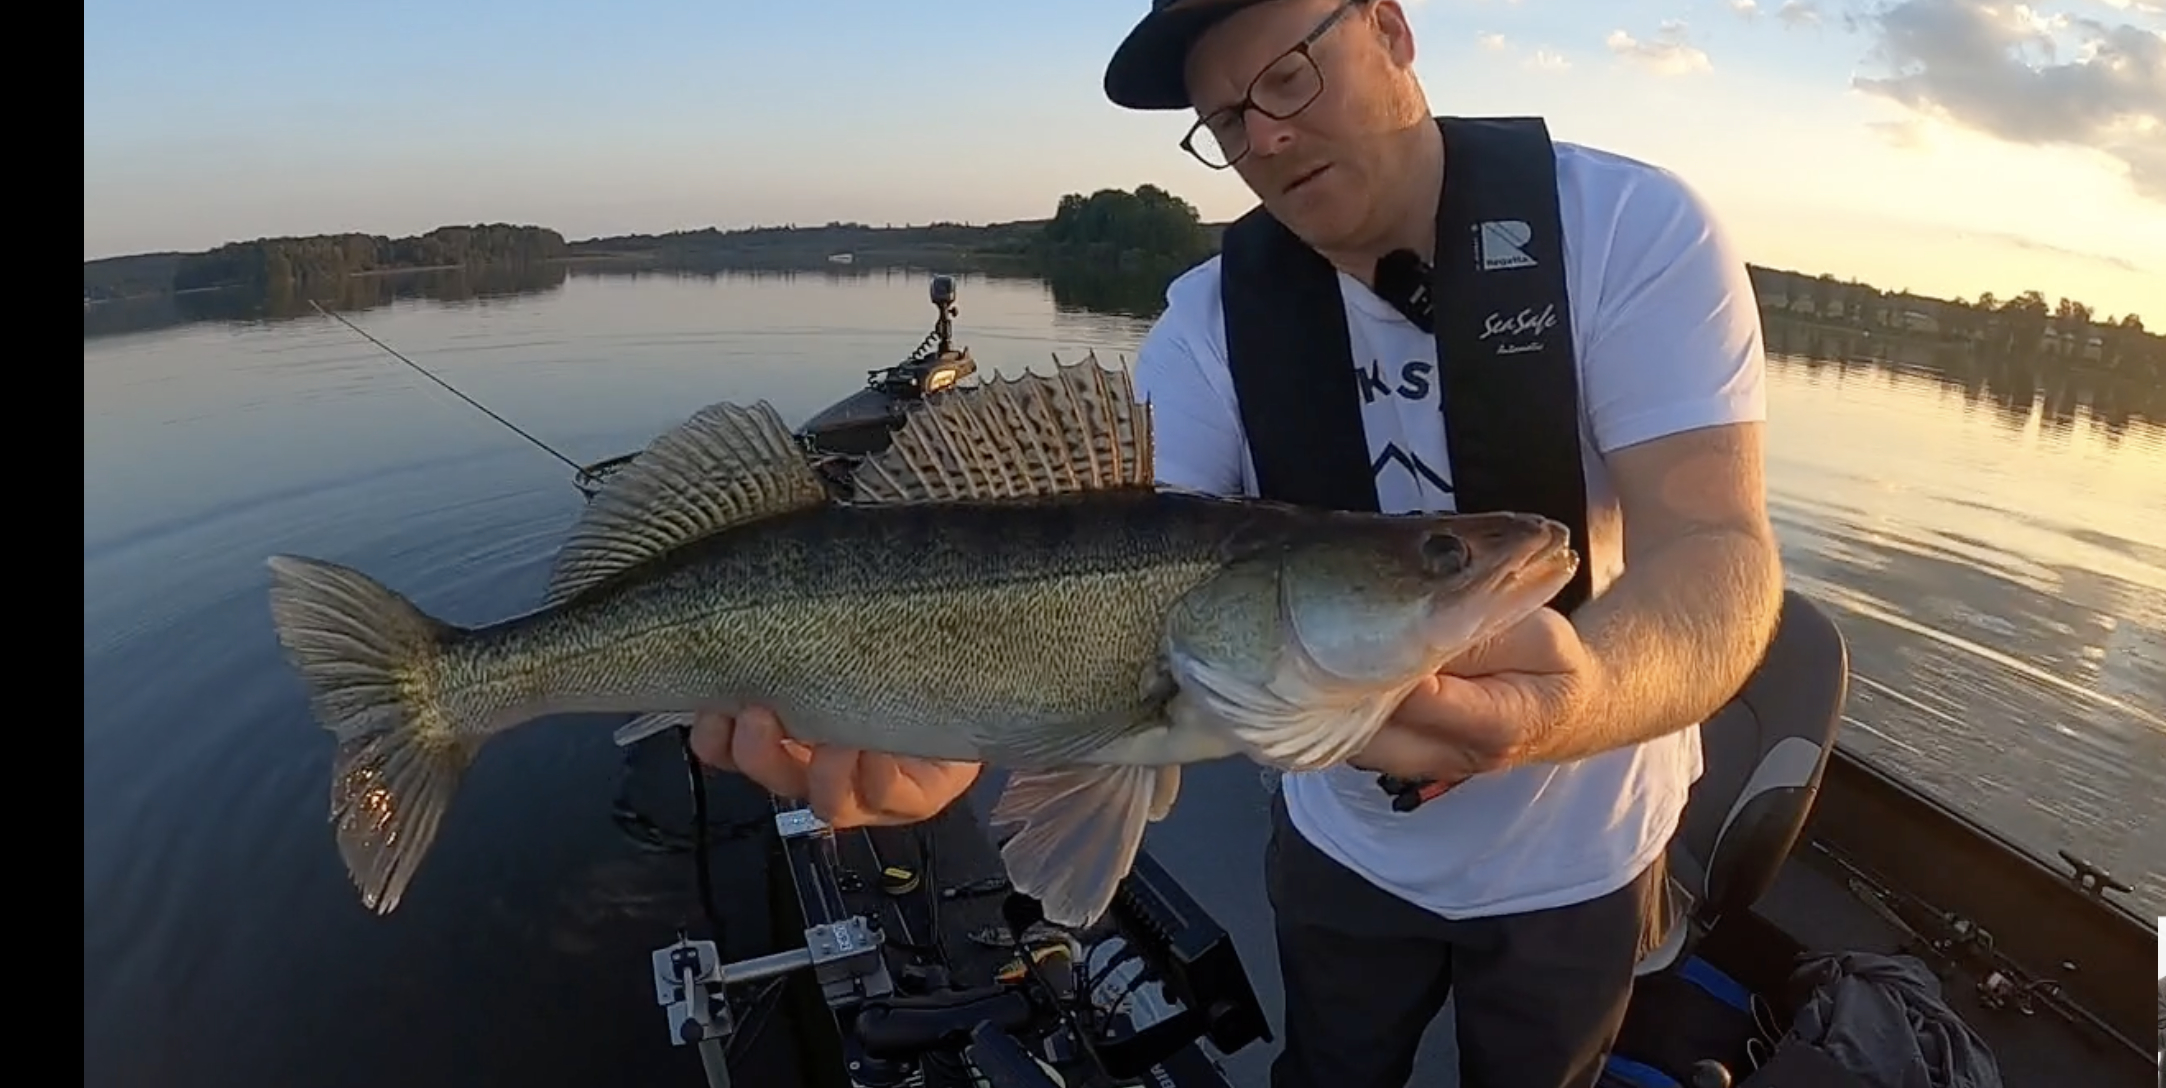 Live fishIng with fishing stars Sweden on DVR 2021-09-09 18:54:52